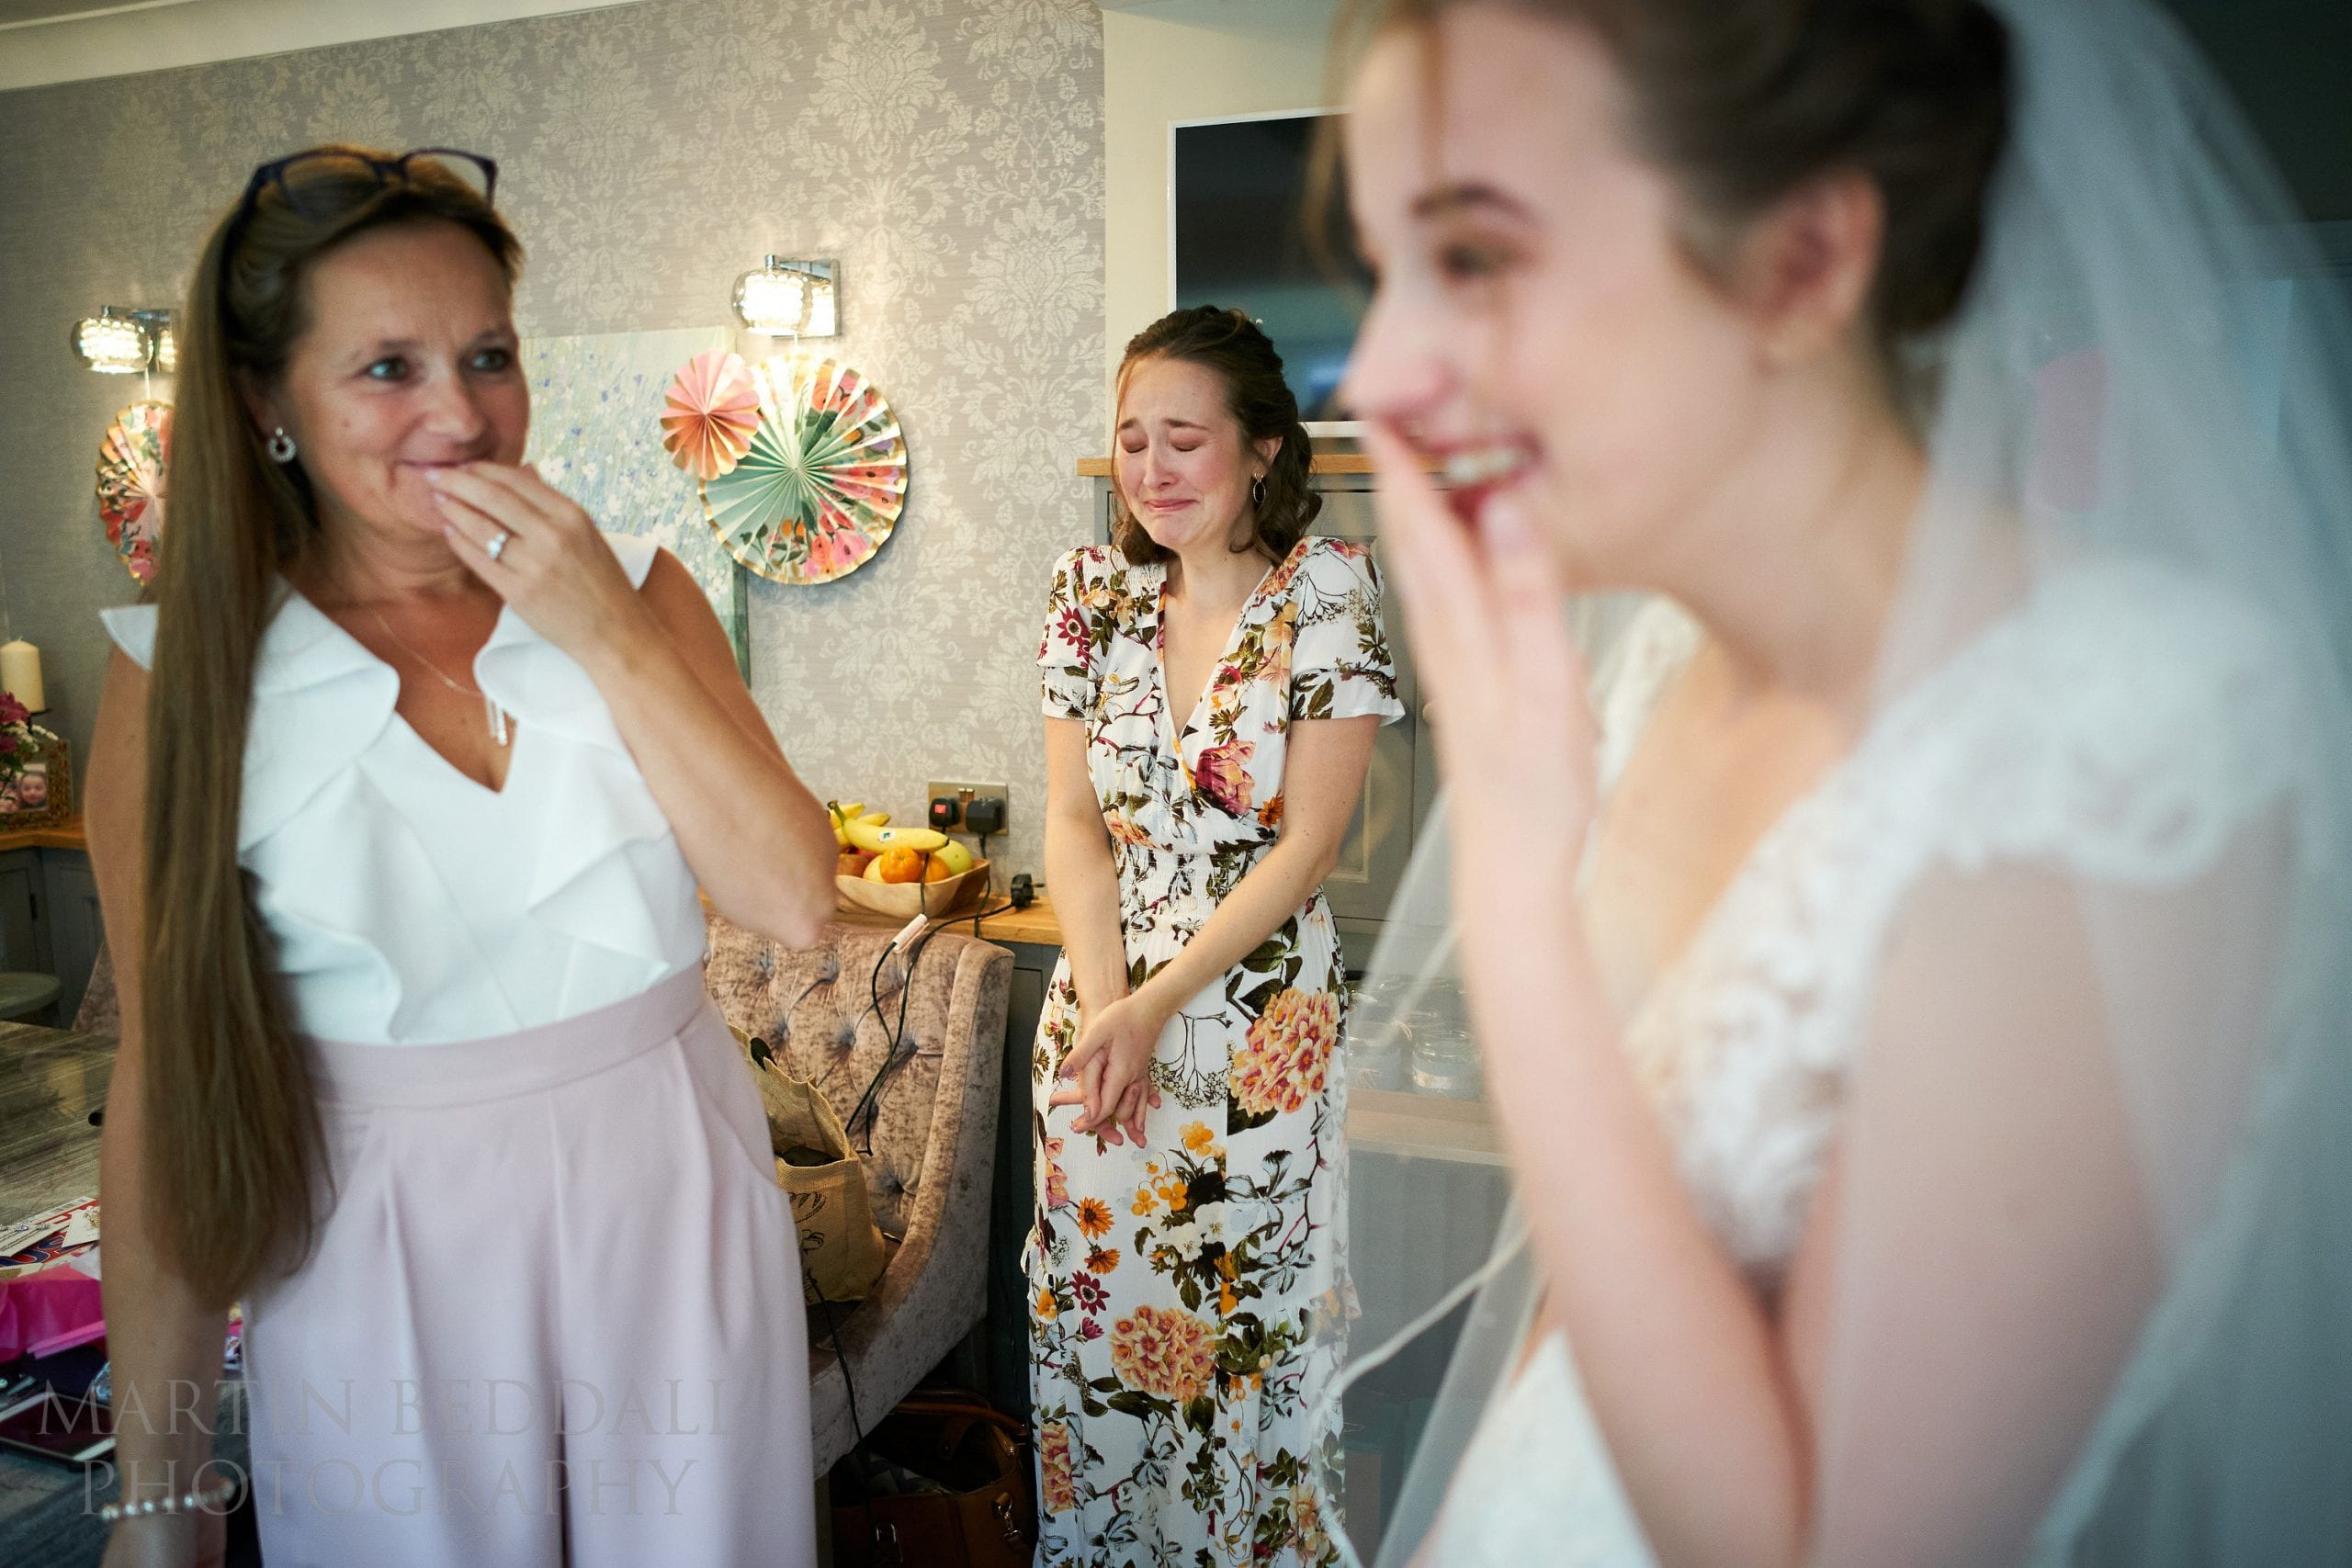 Reaction from mother and sister to bride in her wedding dress